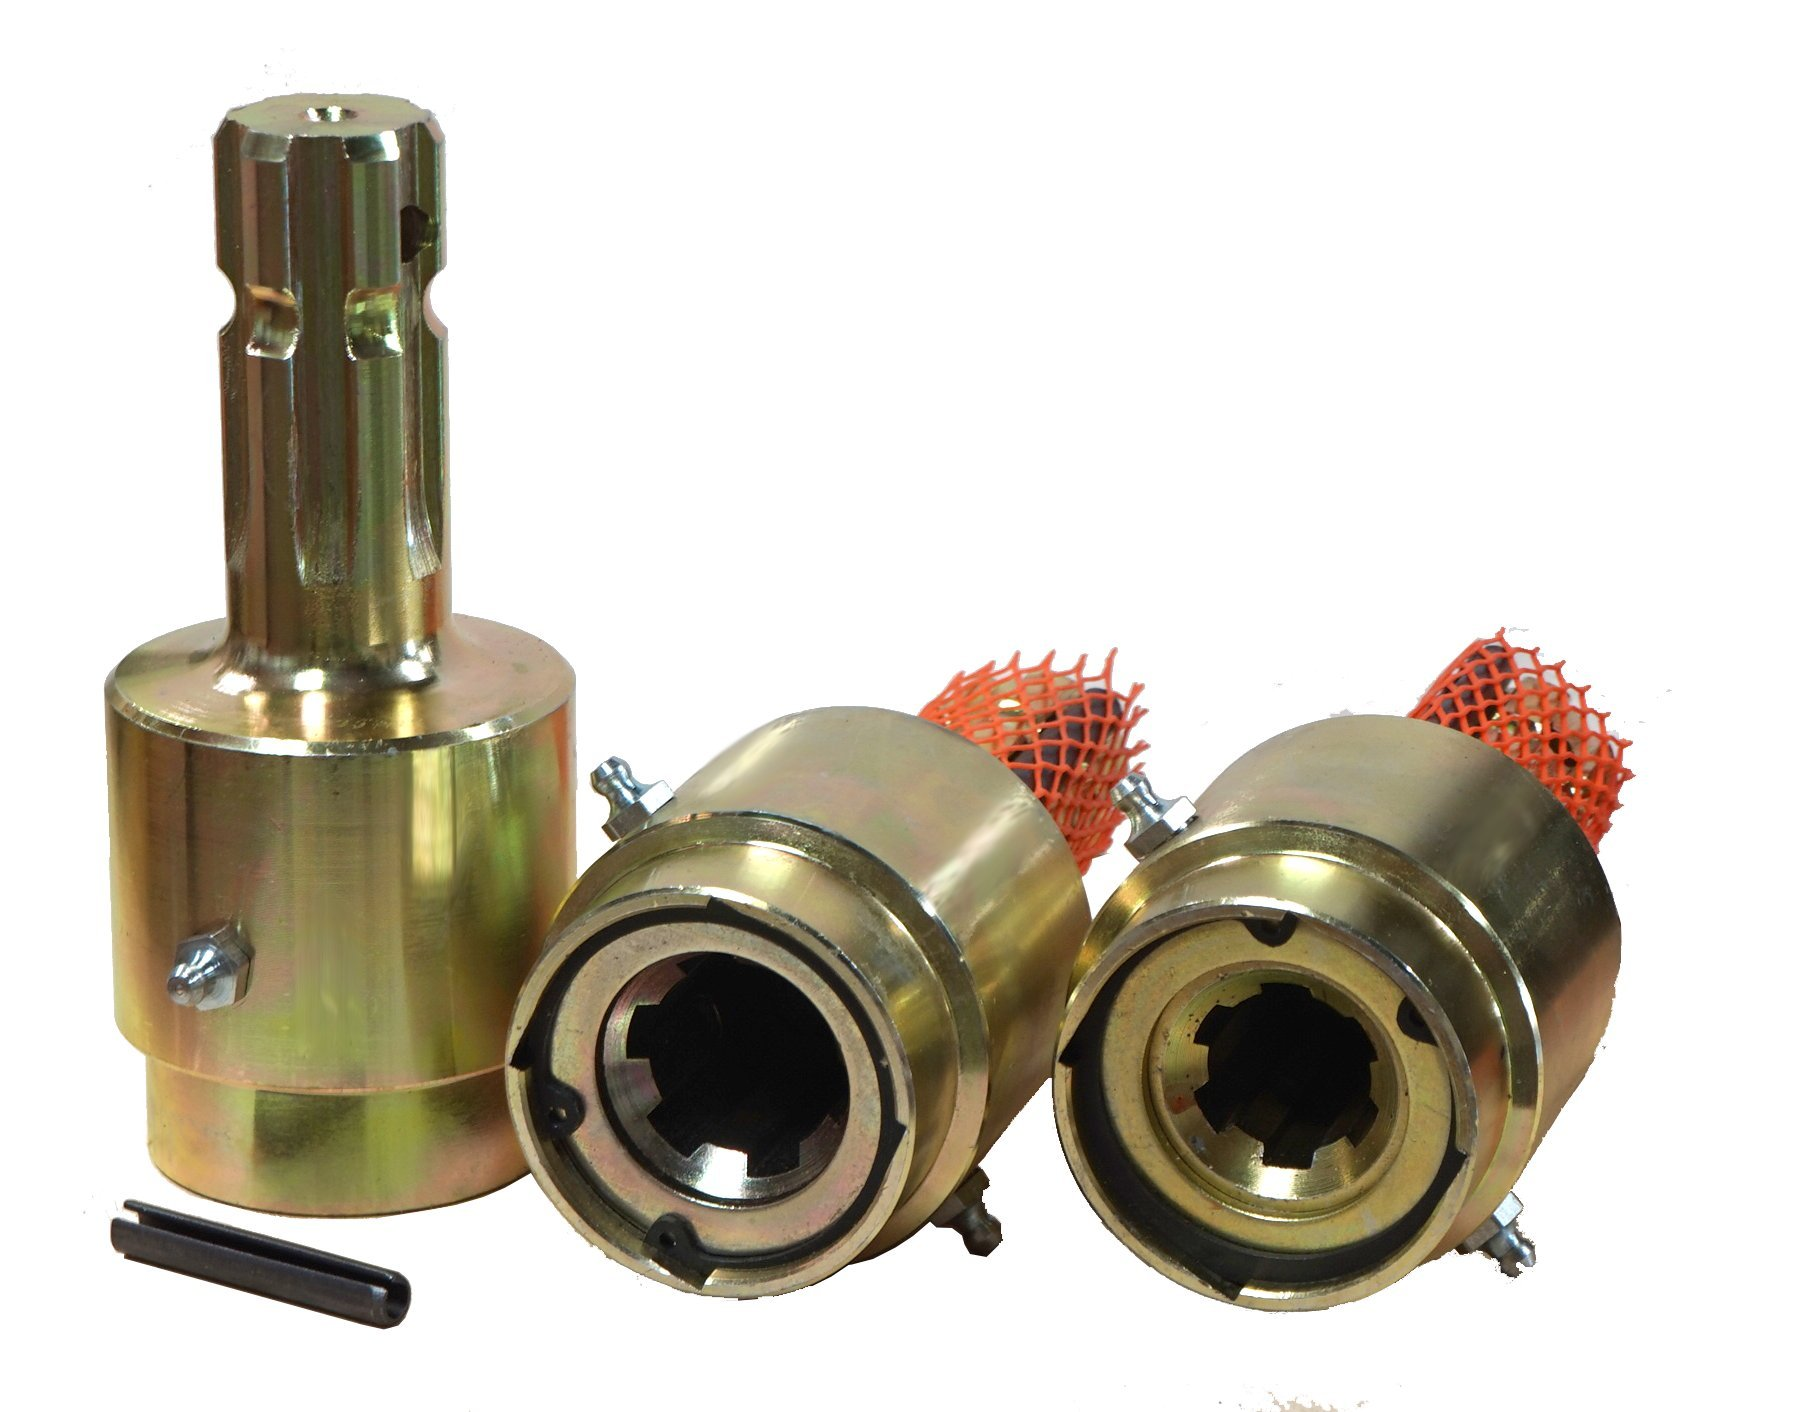 Over Running PTO Overrun Clutch 1-3/8'' x 6 Female to 1-3/8'' x 6 Male